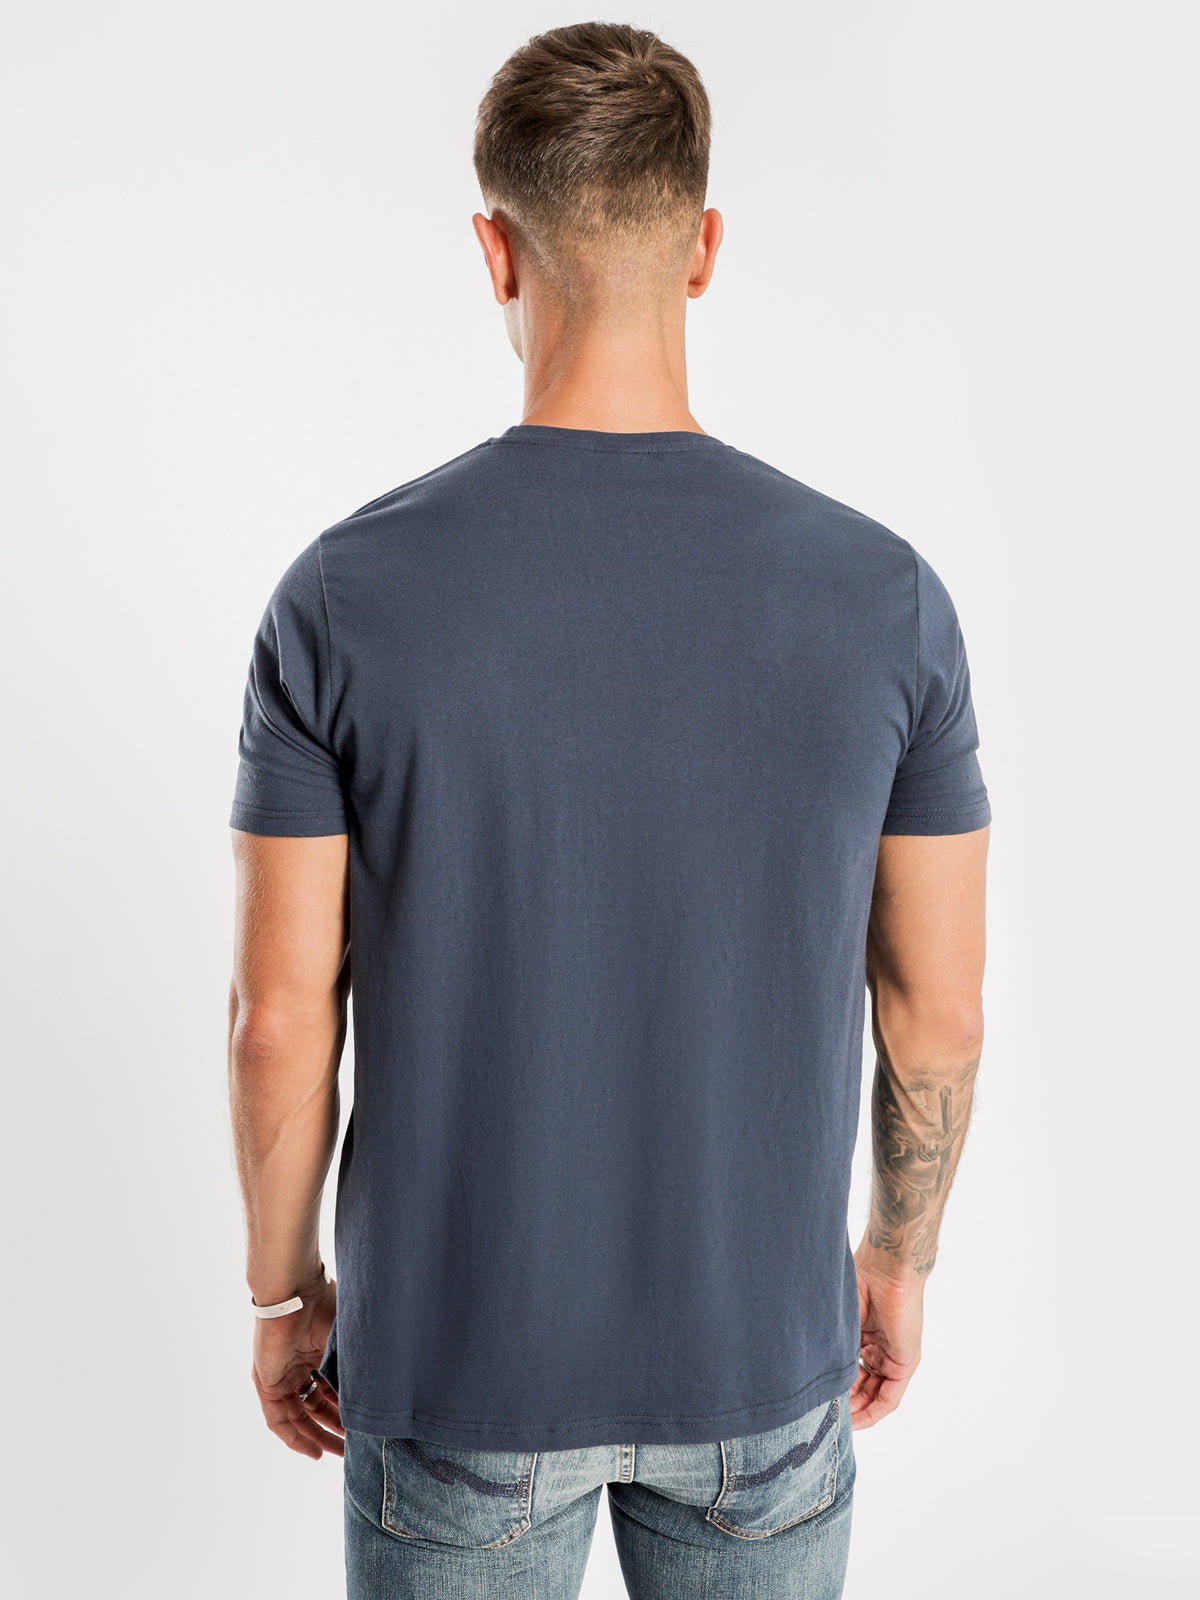 Canaletto T-Shirt in Navy